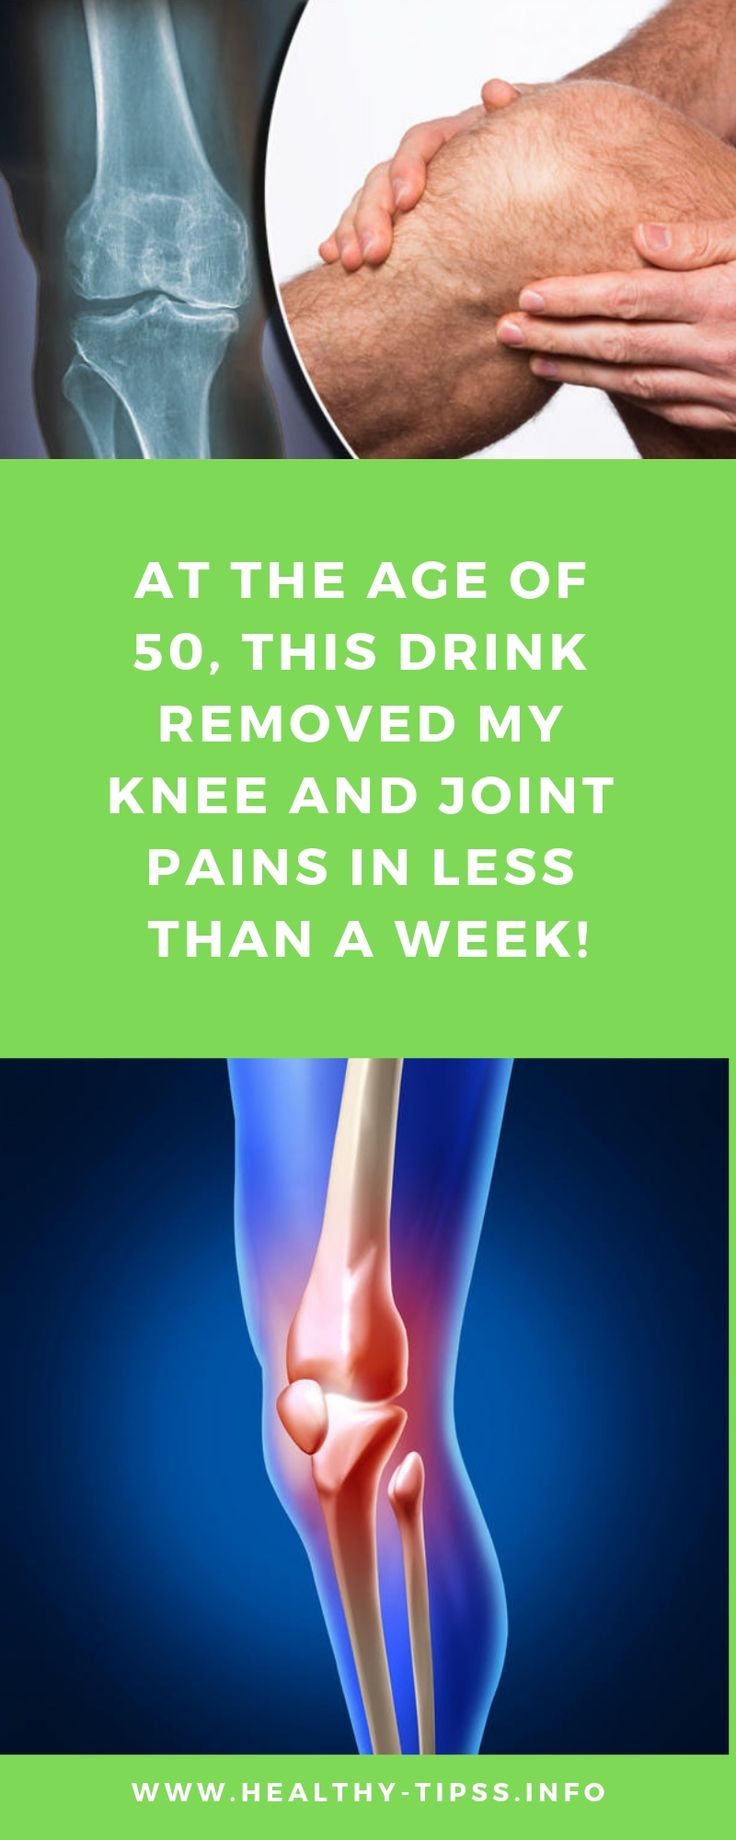 At the Age of 50, This Drink Removed My Knee and Joint Pains in Less Than a Week! Daily green life